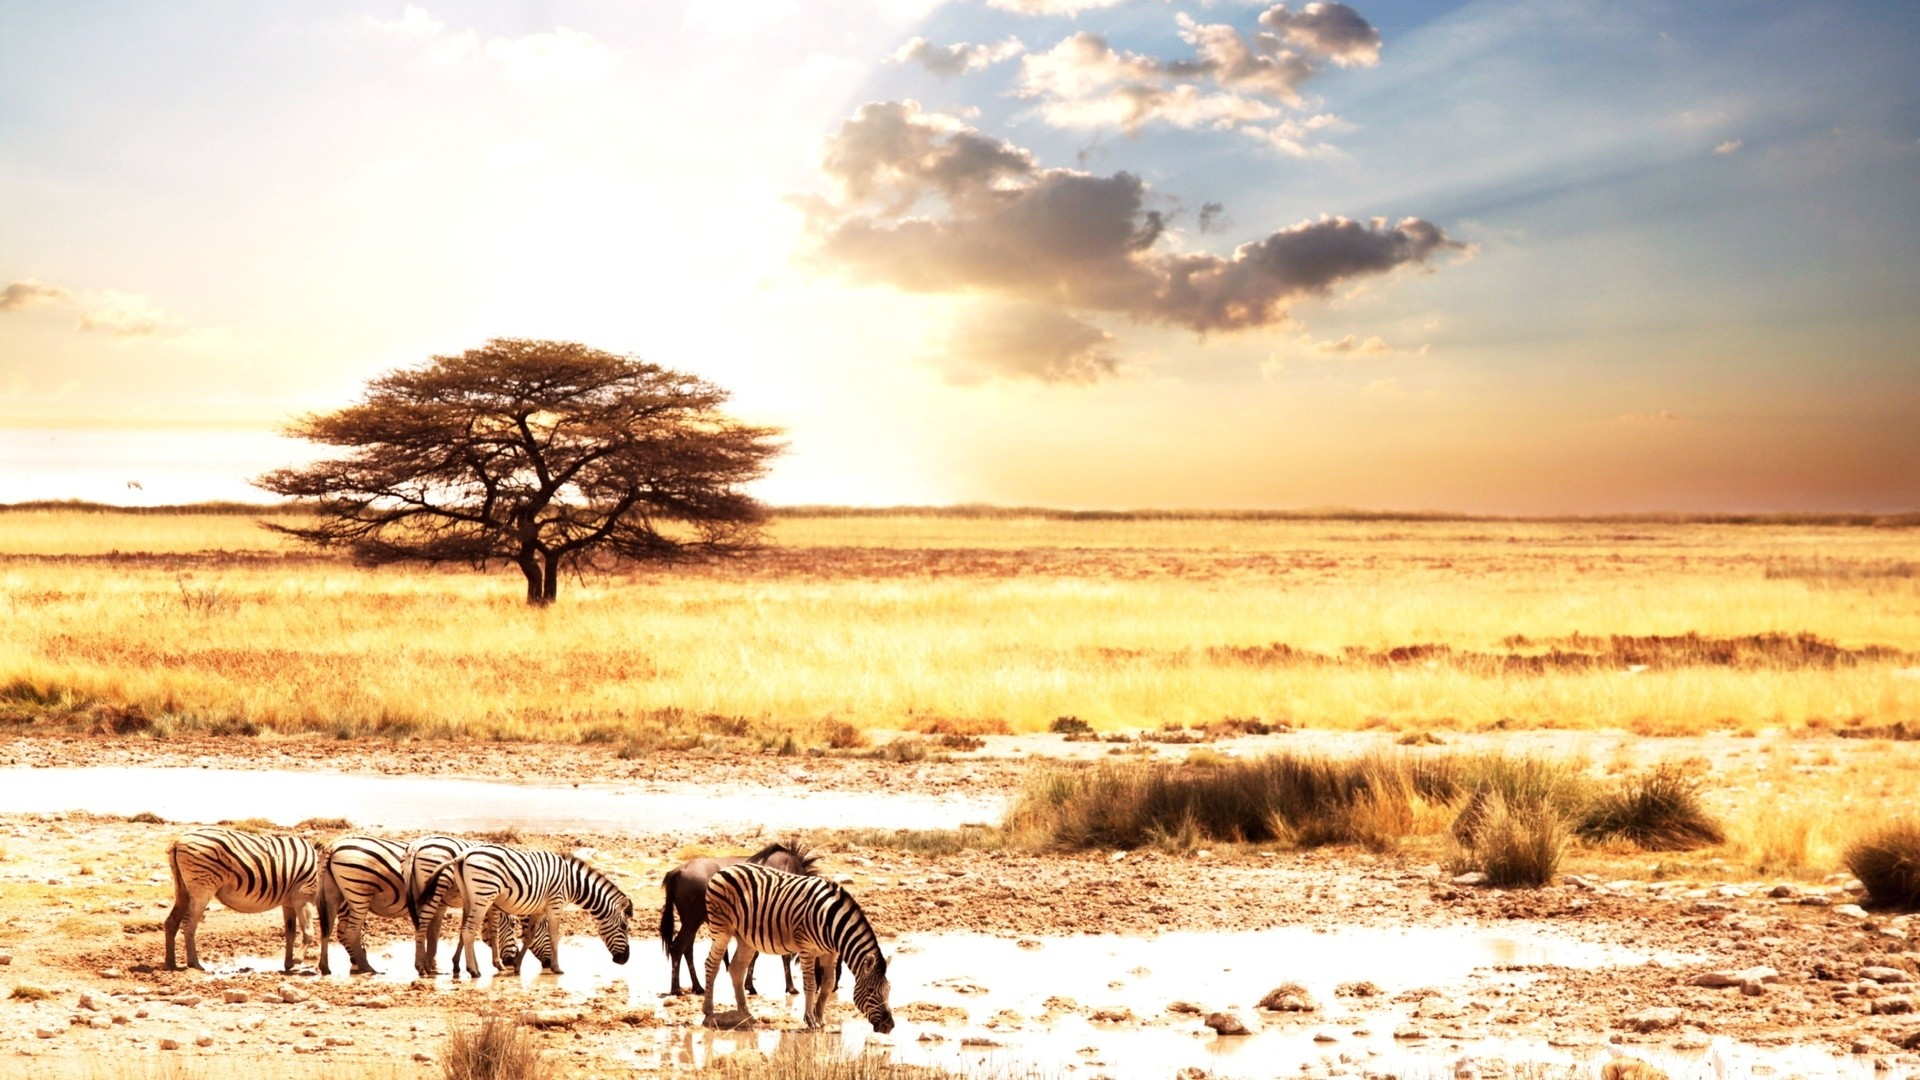 Africa Wallpaper Picture hd